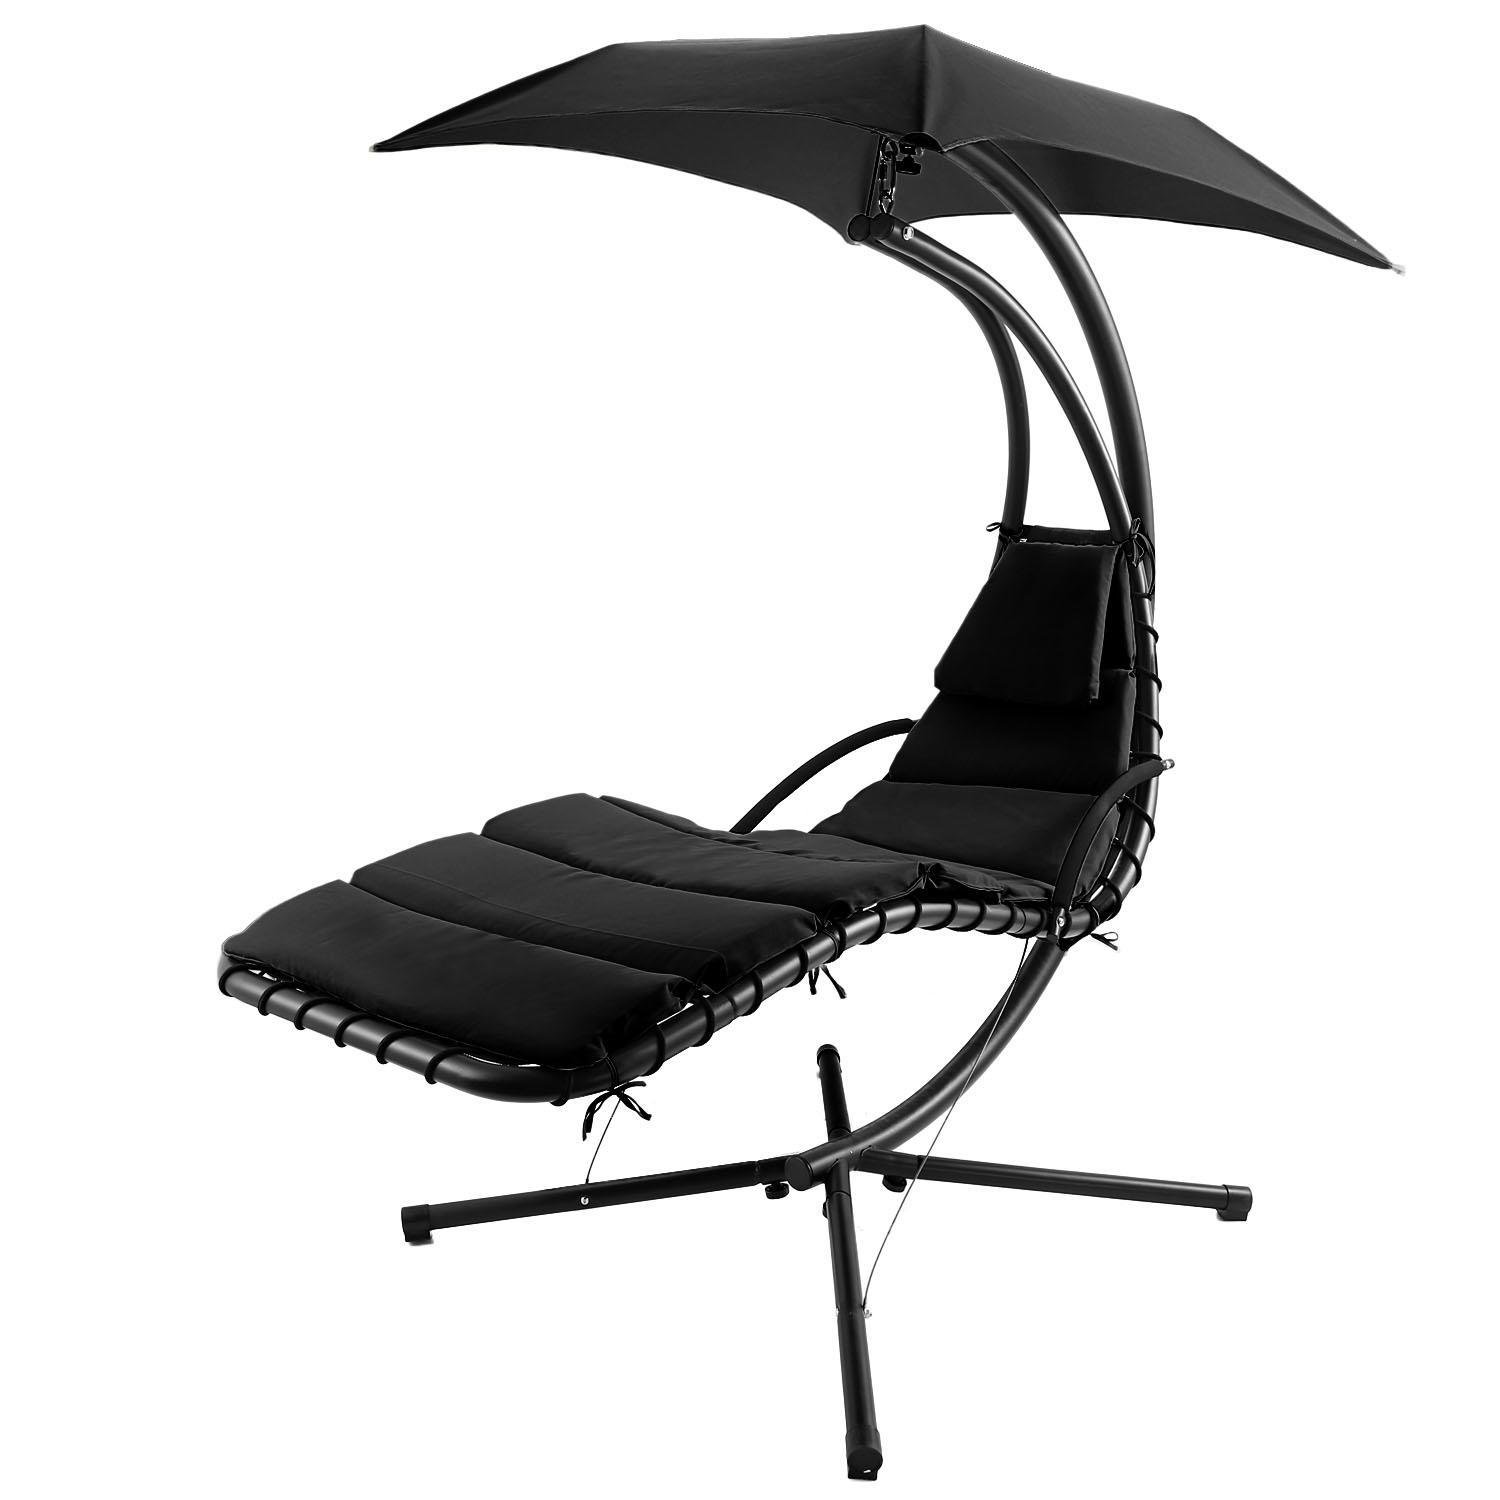 550lbs Capacity Hanging Lounger Chair Modern Design Swing Hammock Canopy Yard Garden (Black)